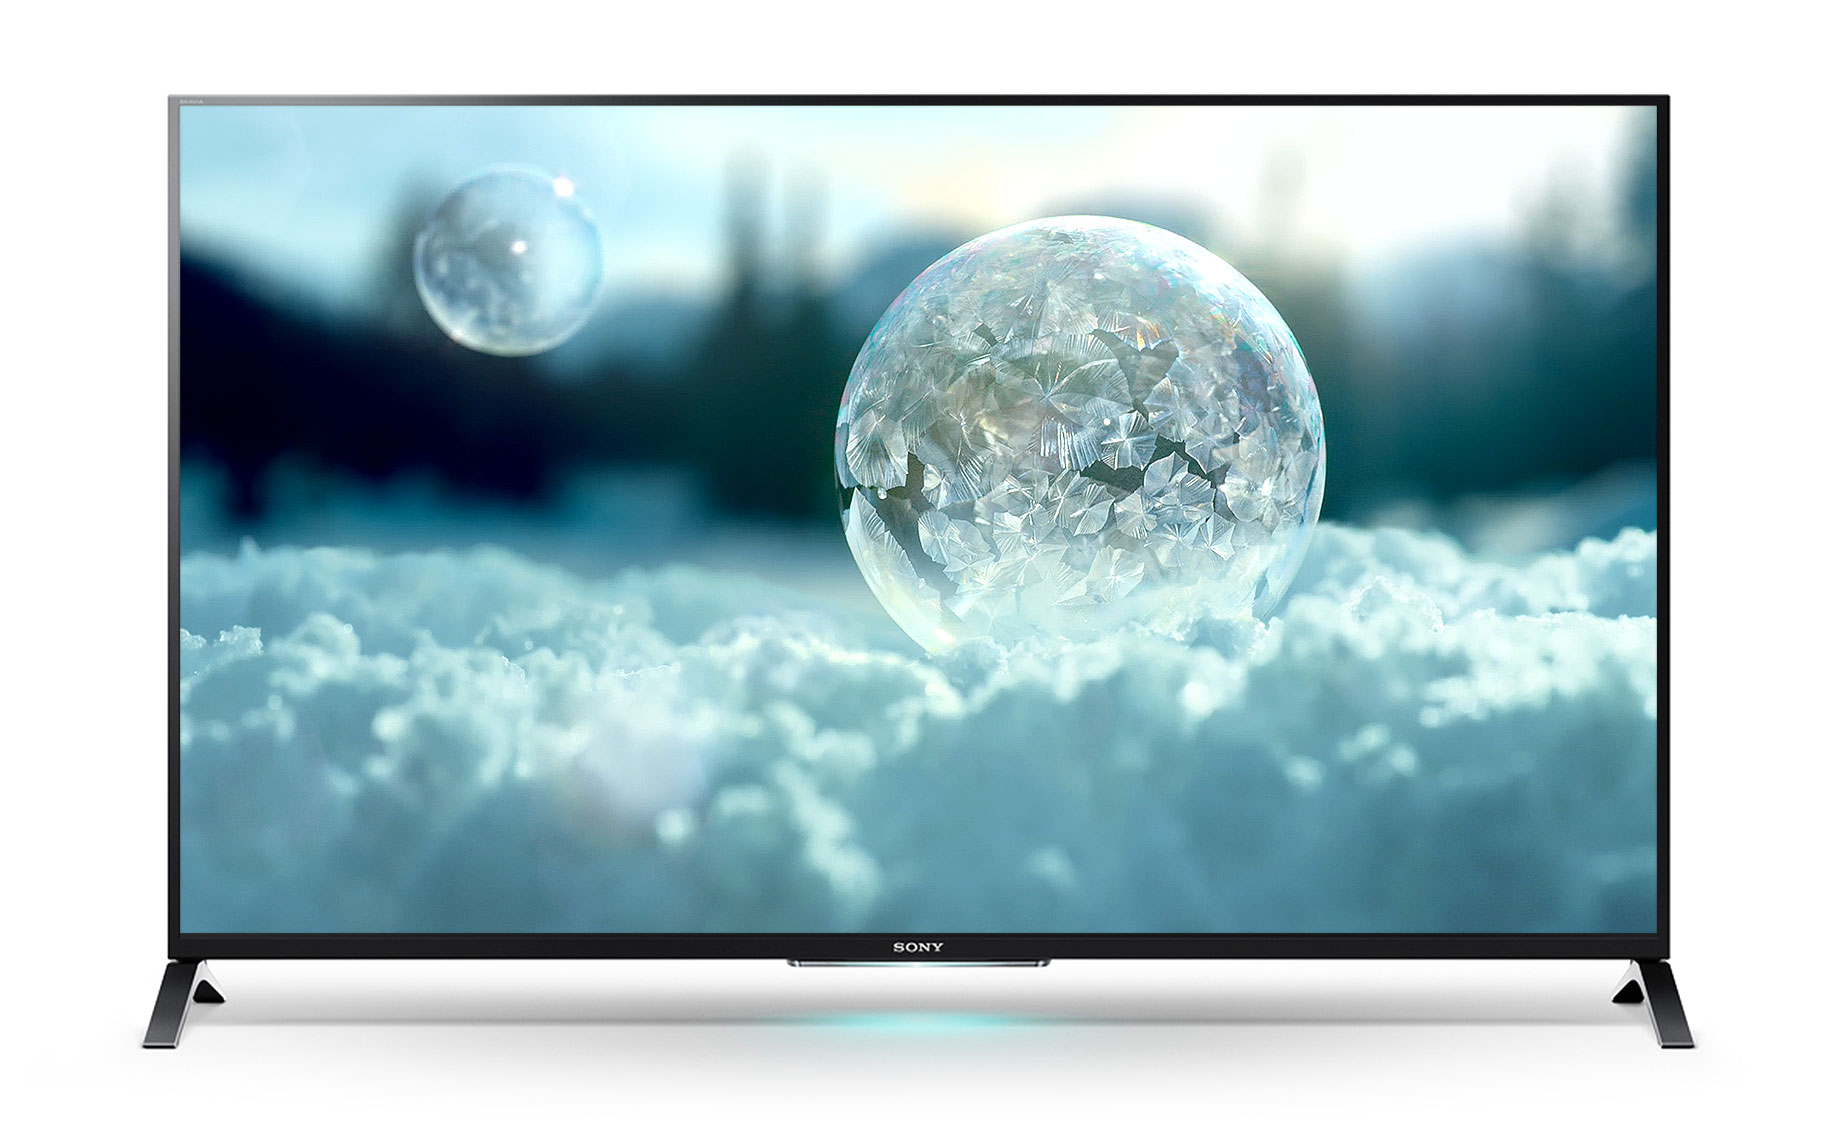 televisores 4k ultra hd tv 4k cuatro veces full hd sony espa a